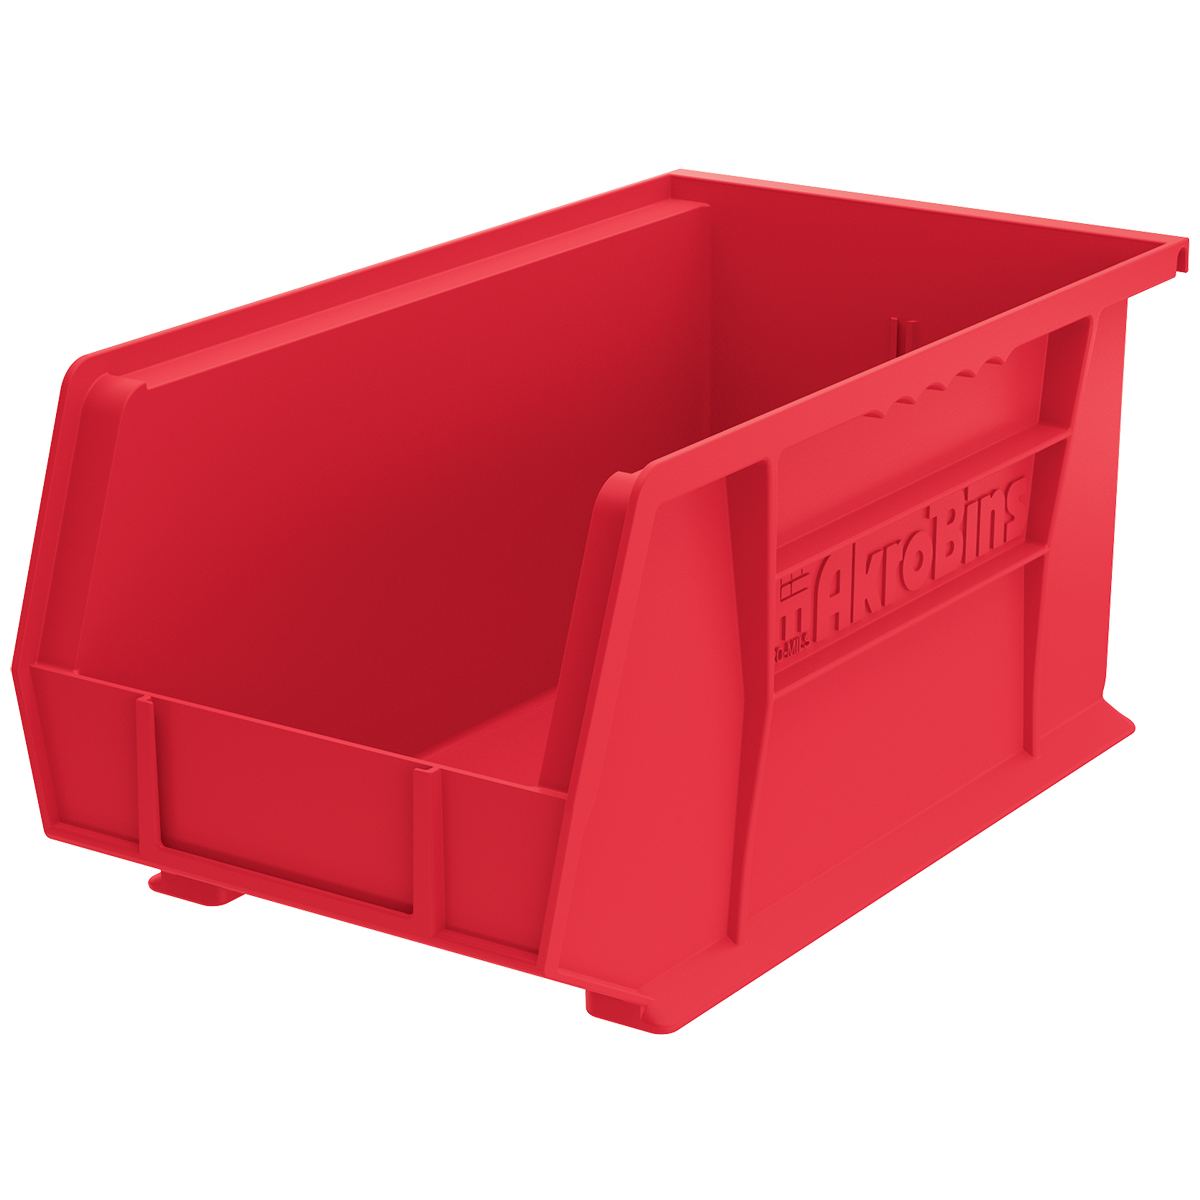 AkroBin 14-3/4 x 8-1/4 x 7, Red (30240RED).  This item sold in carton quantities of 12.